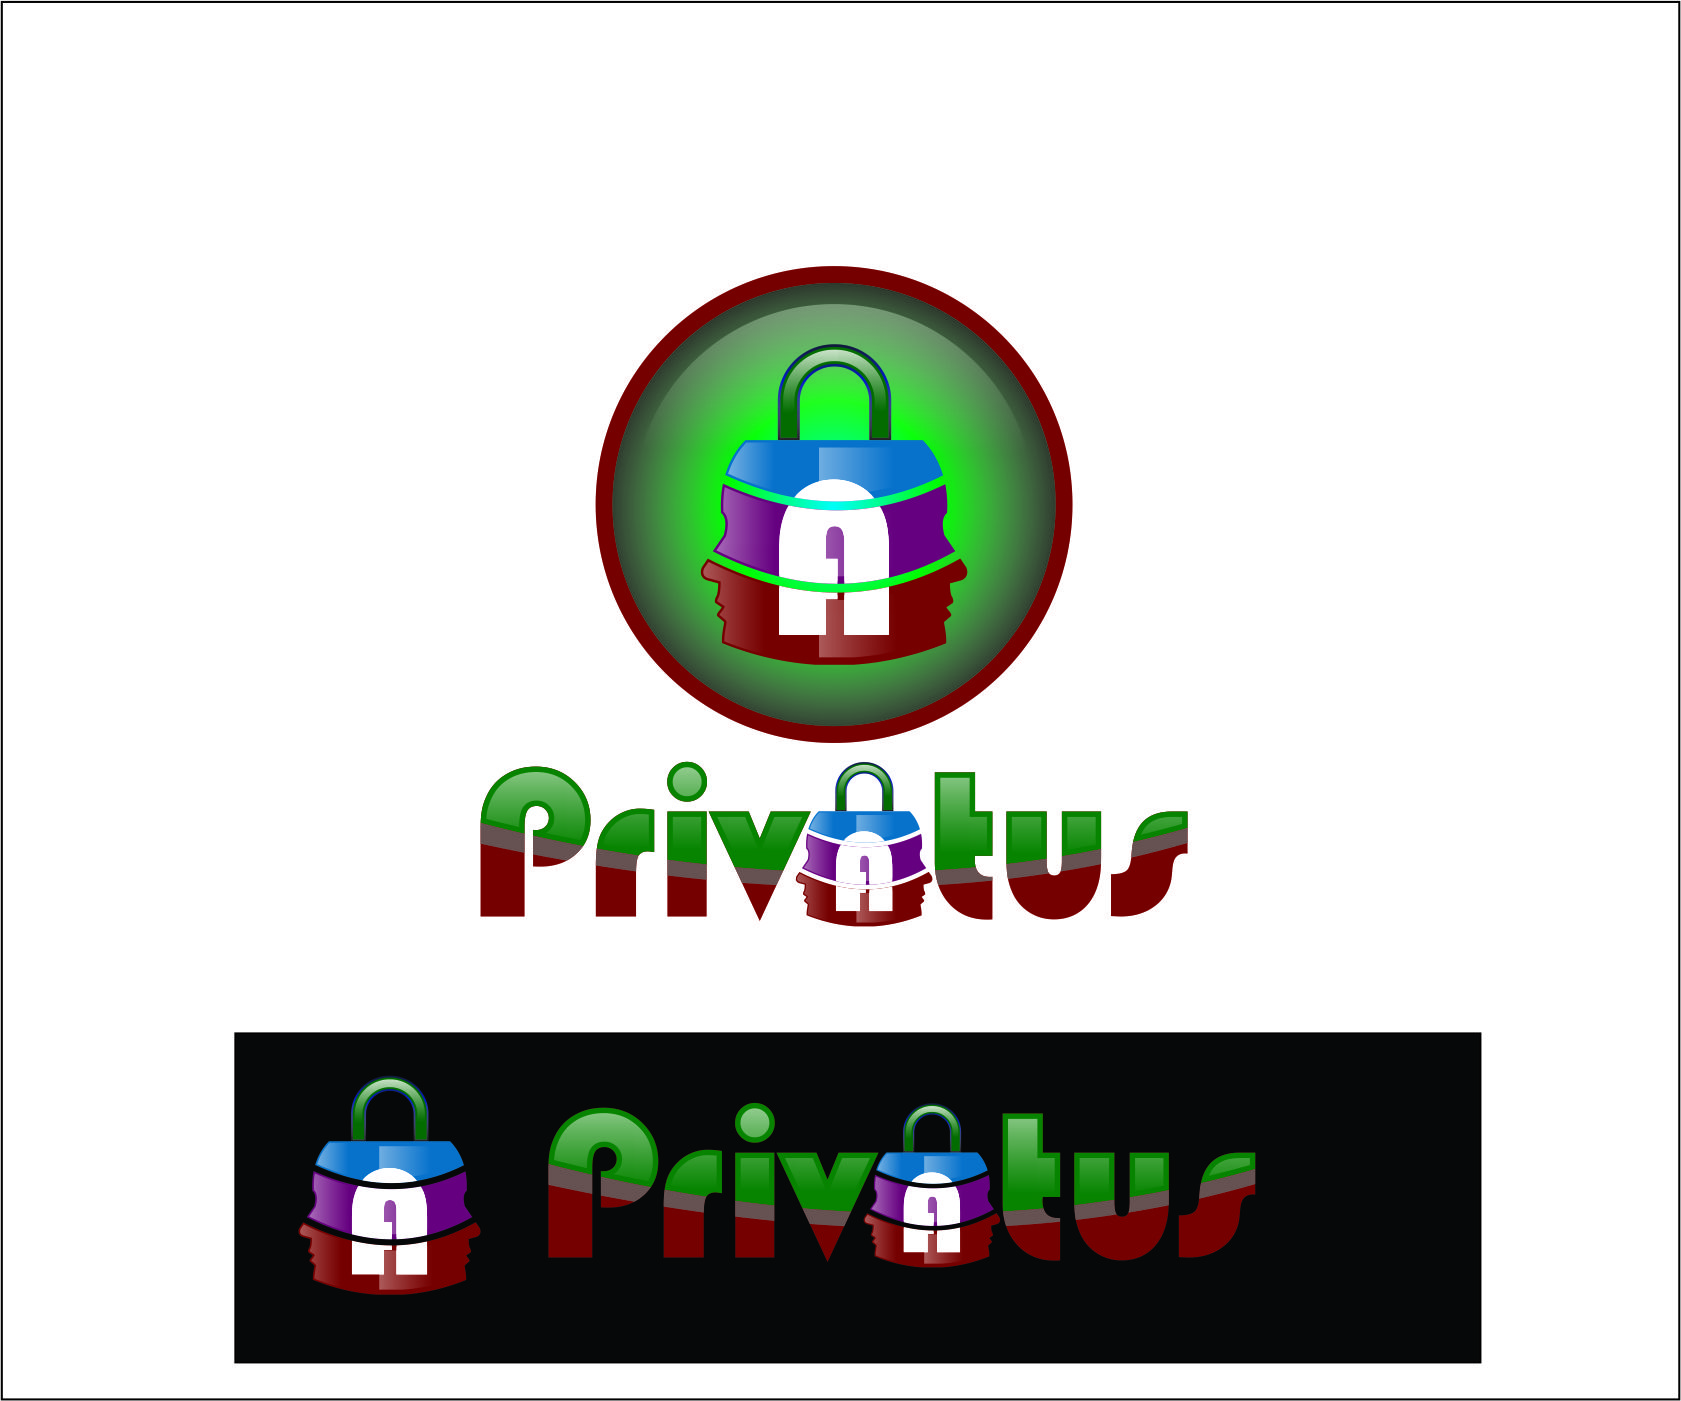 Logo Design by Agus Martoyo - Entry No. 123 in the Logo Design Contest New Logo Design for privatus.